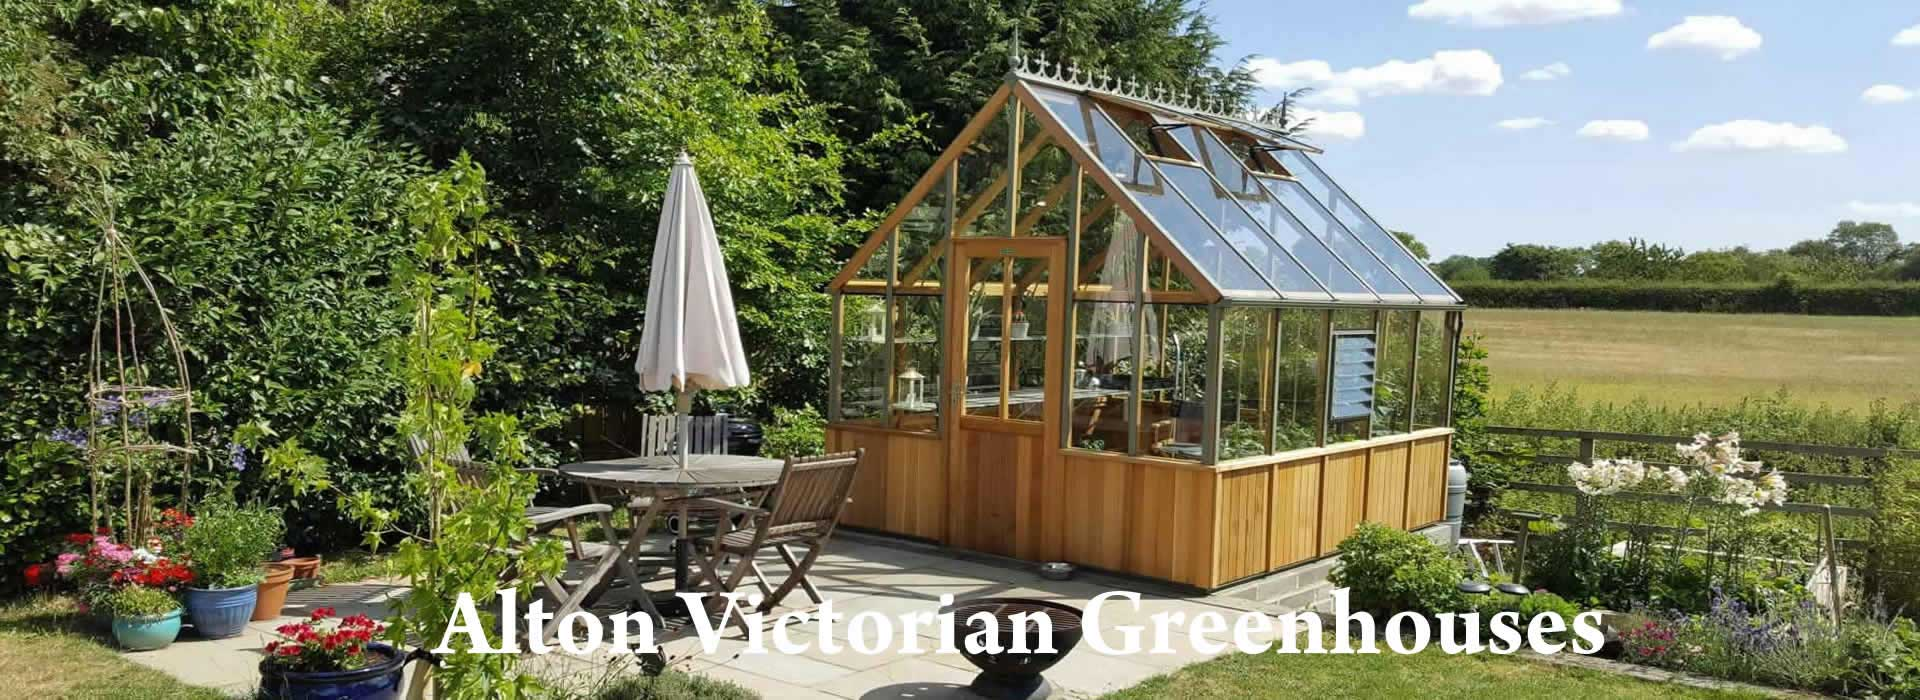 Alton Victorian Greenhouses